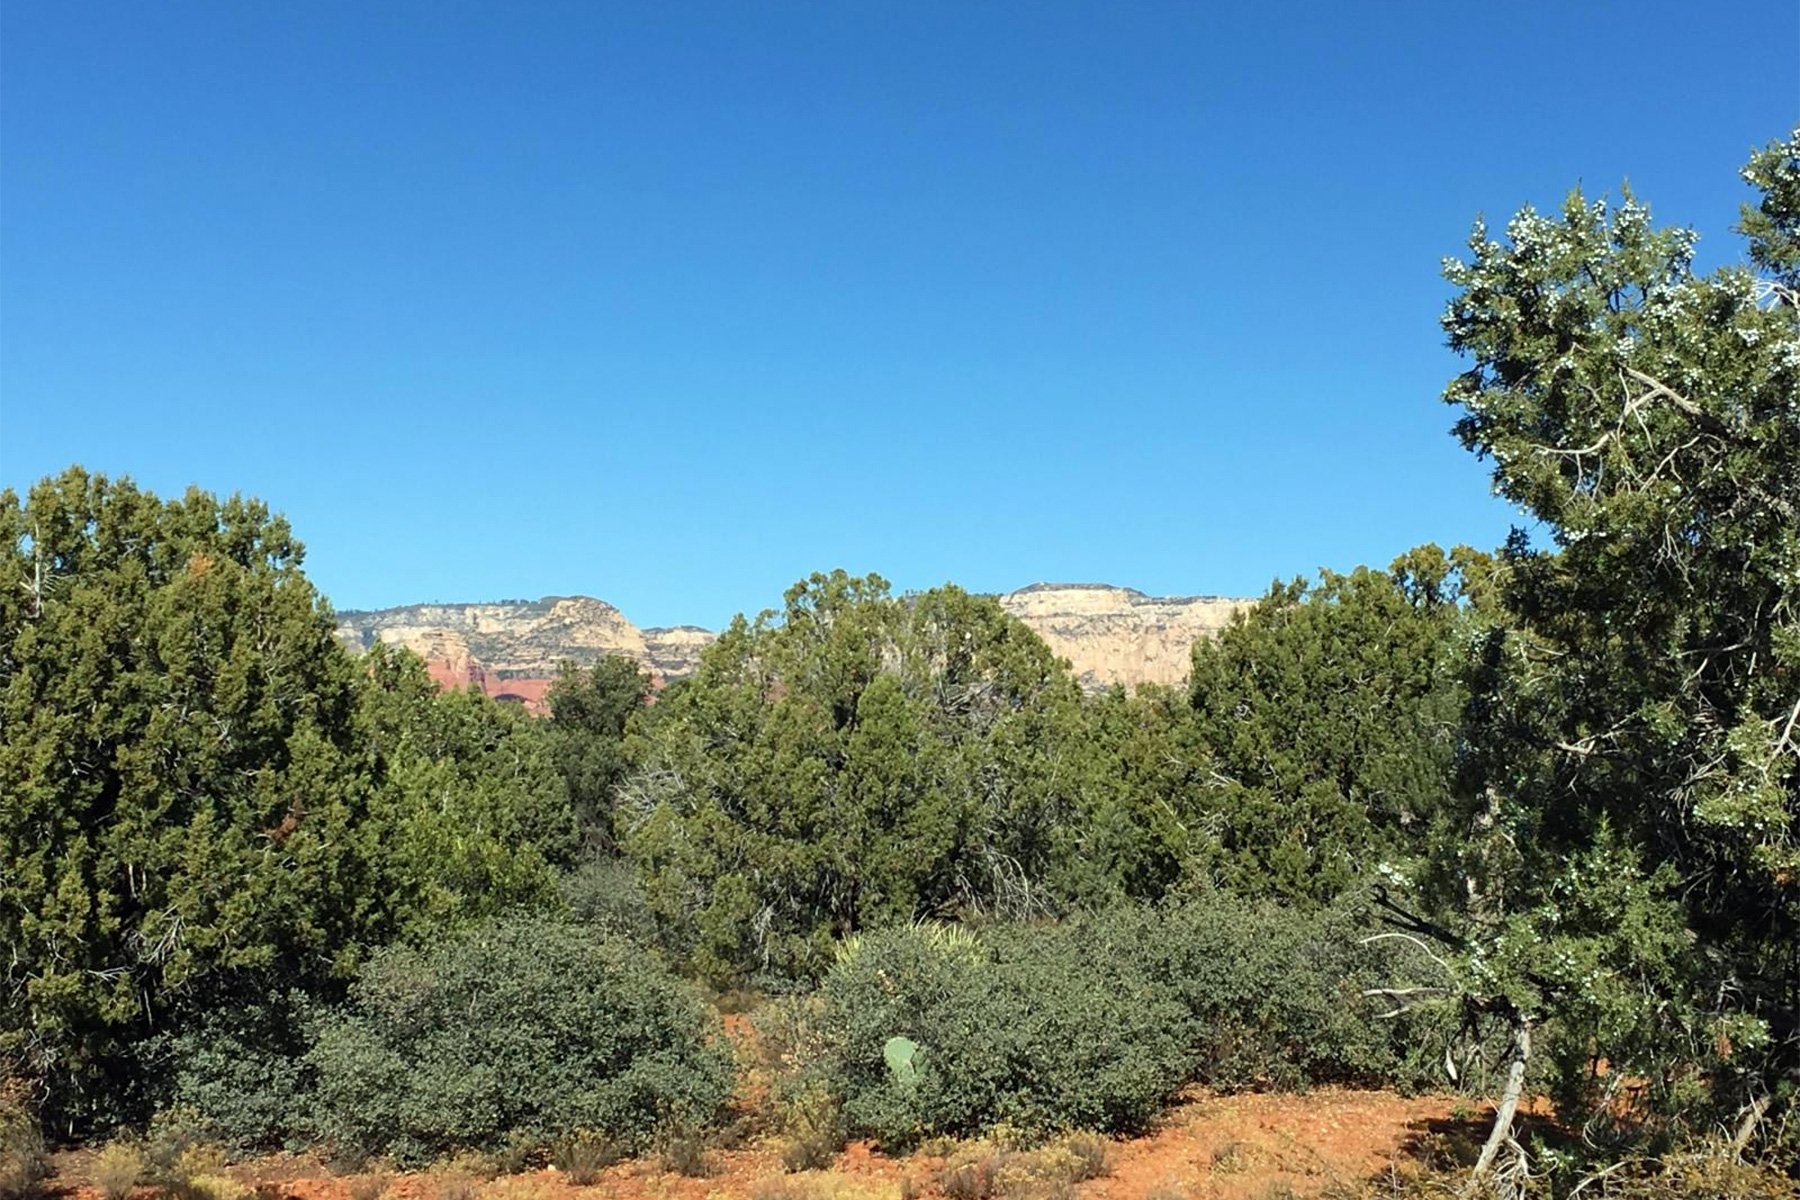 토지 용 매매 에 Level parcel in West Sedona along Dry Creek Road 700 Dry Creek 2.91 Acres Rd Sedona, 아리조나, 86336 미국